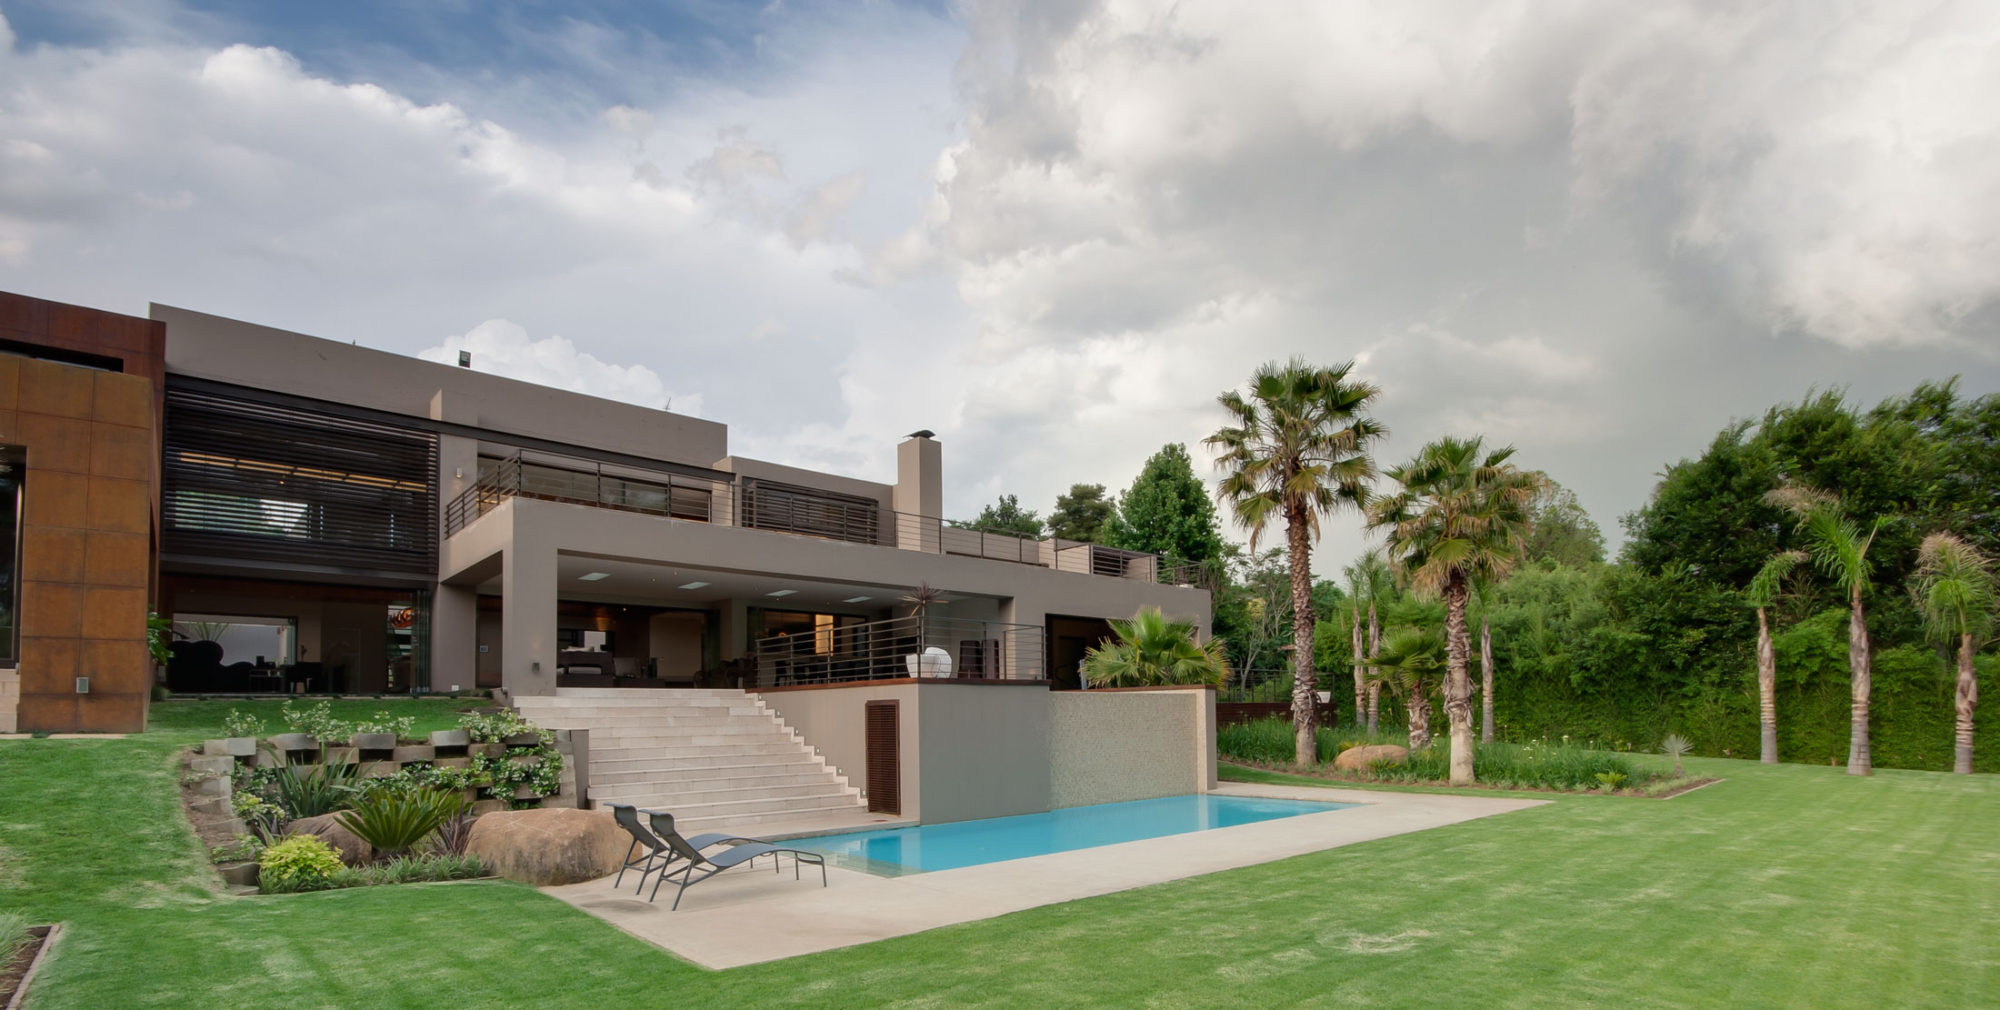 Back to post the amazing house sed in johannesburg south africa